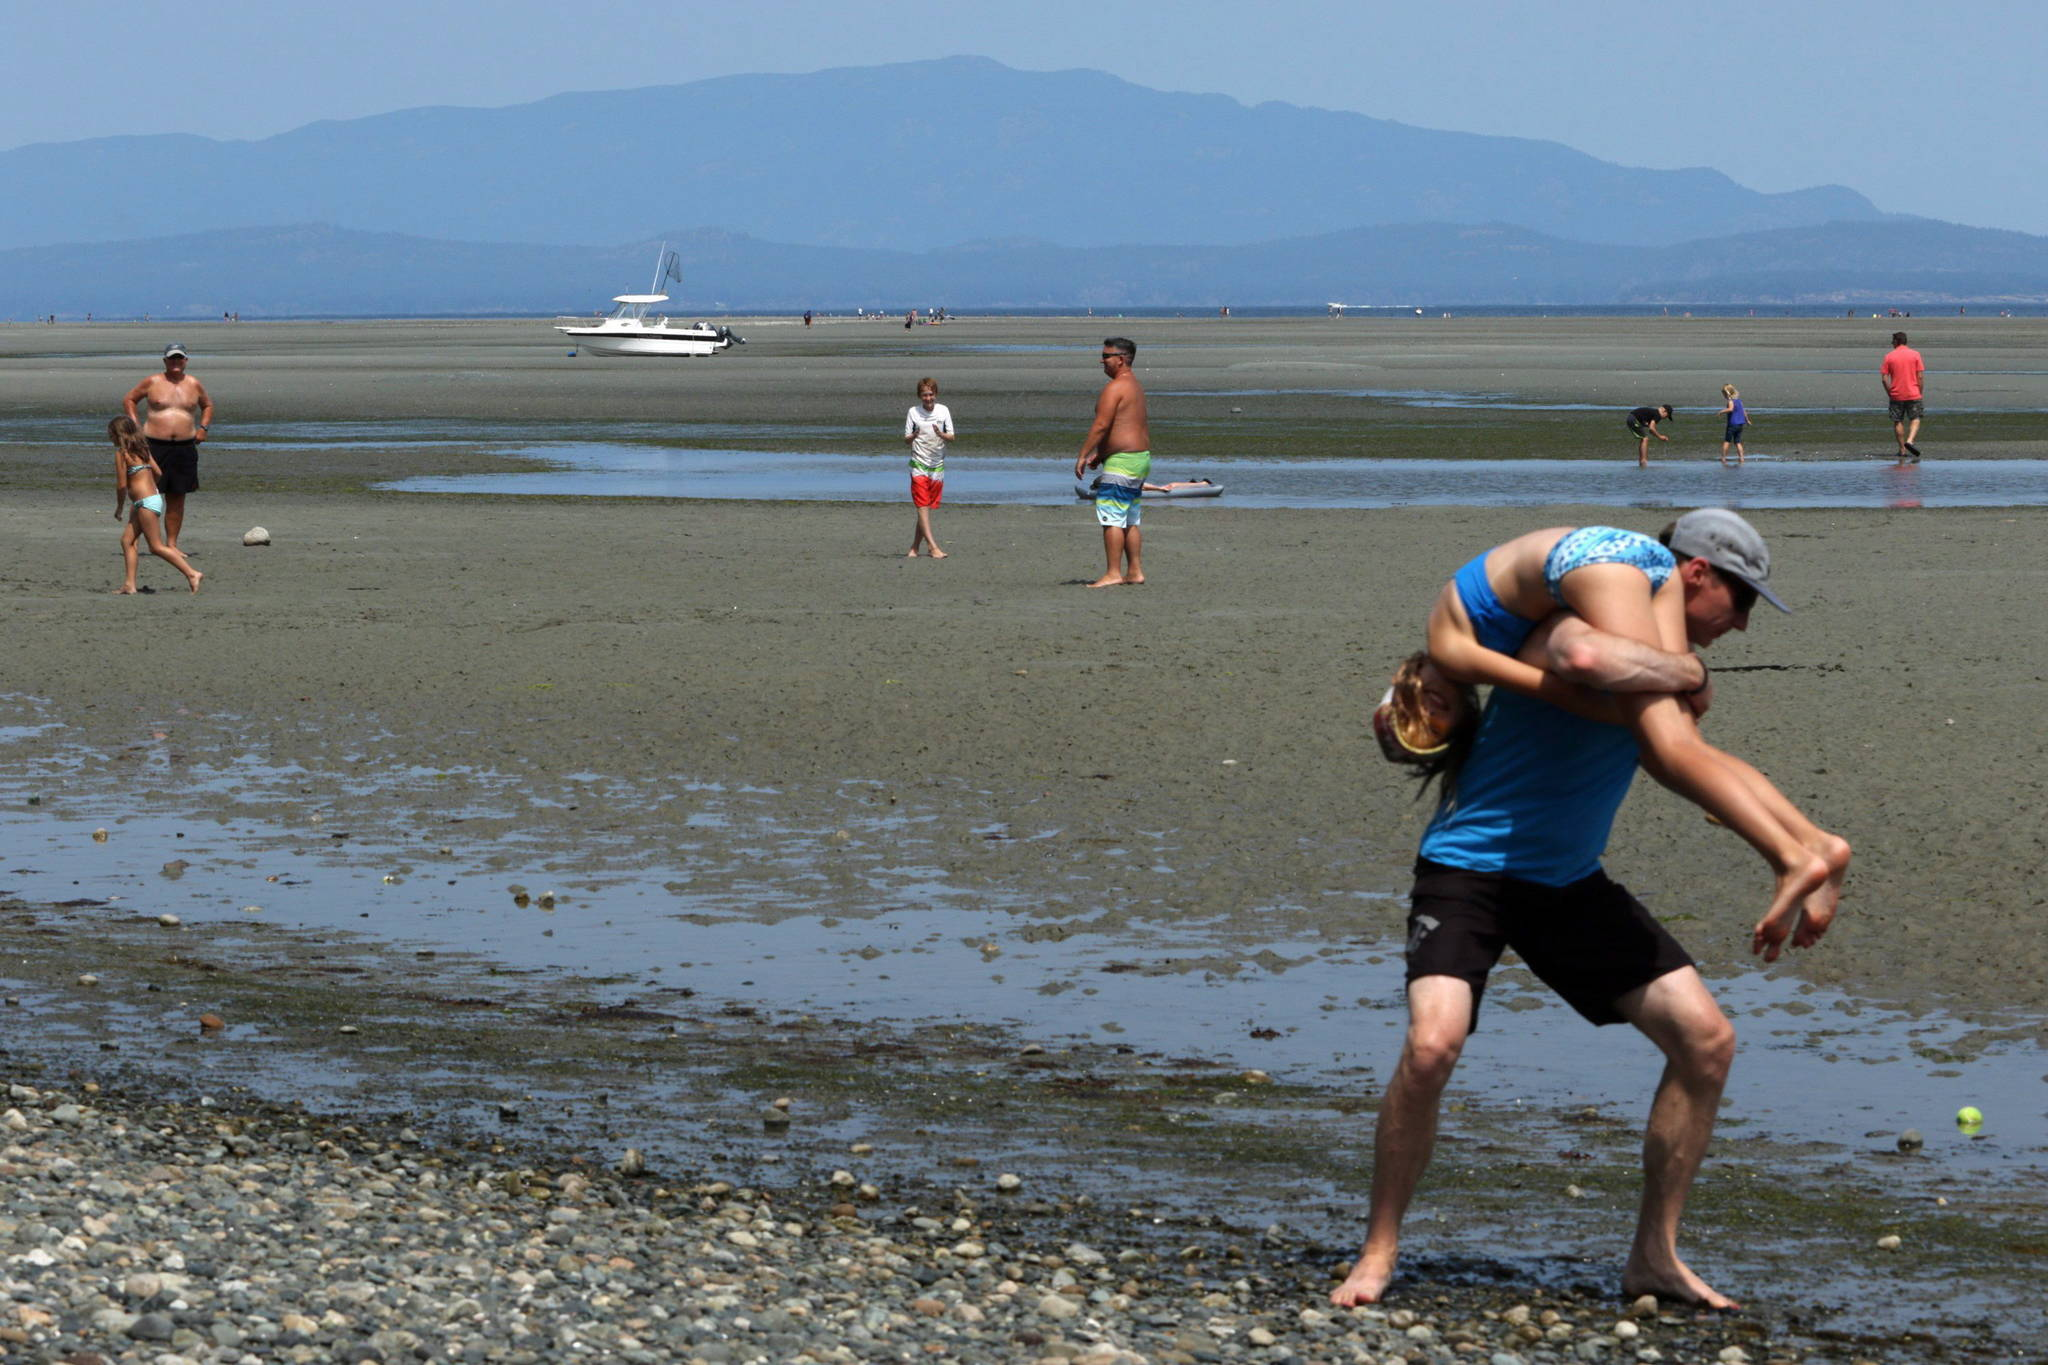 People enjoy the heat wave across Vancouver Island during a low tide at Rathtrevor Beach Provincial Park in Parksville, B.C., on Friday, July 27, 2018. THE CANADIAN PRESS/Chad Hipolito